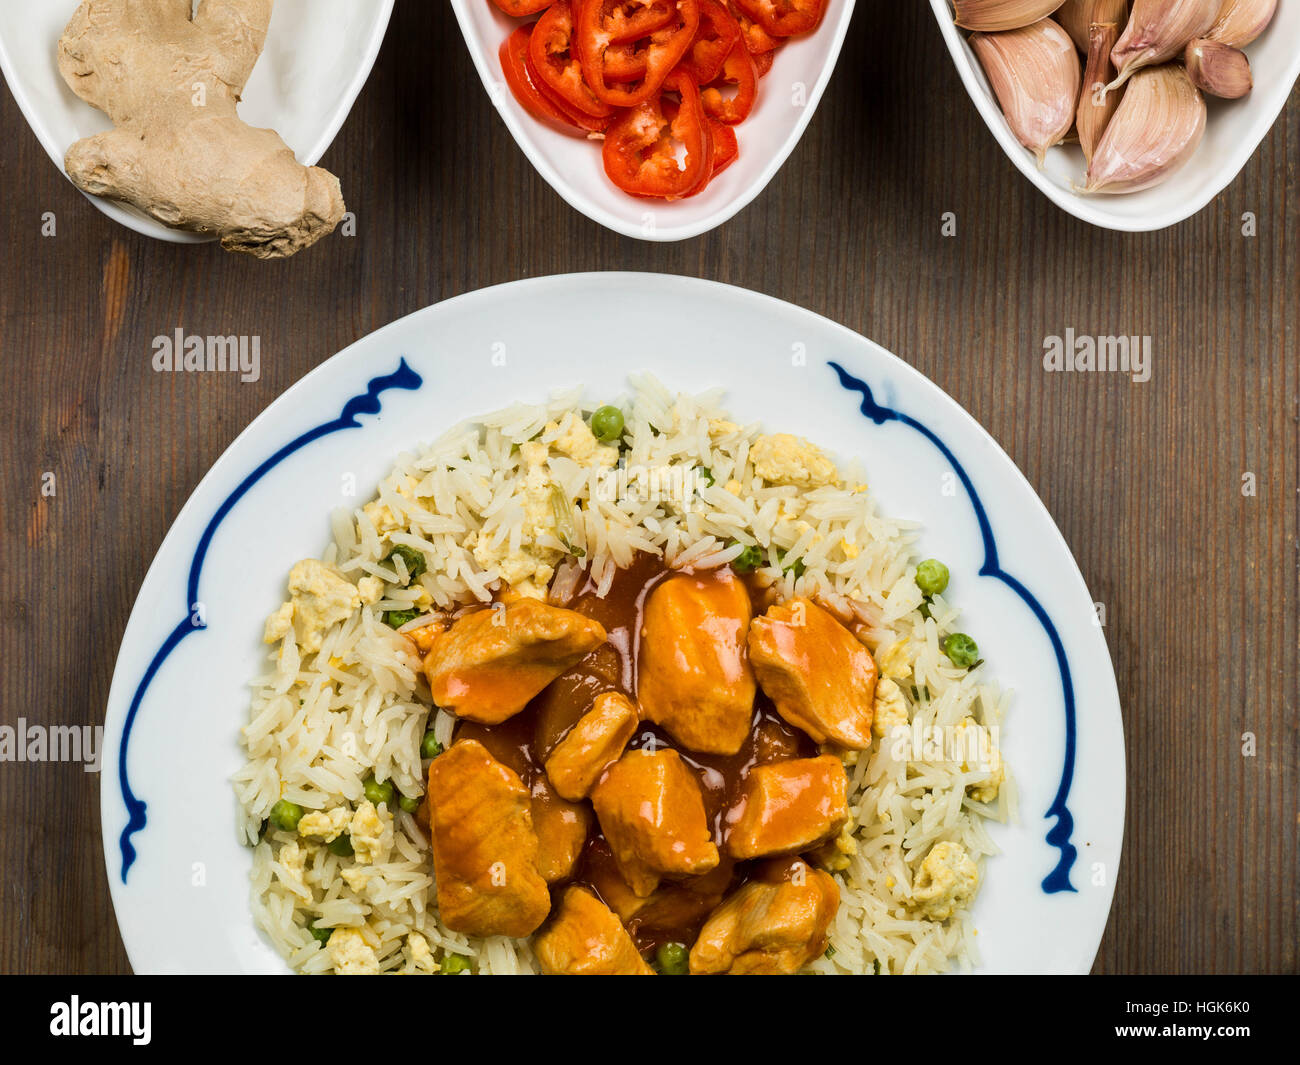 Sweet and Sour Chicken With Egg Fried Rice Chinese Meal - Stock Image